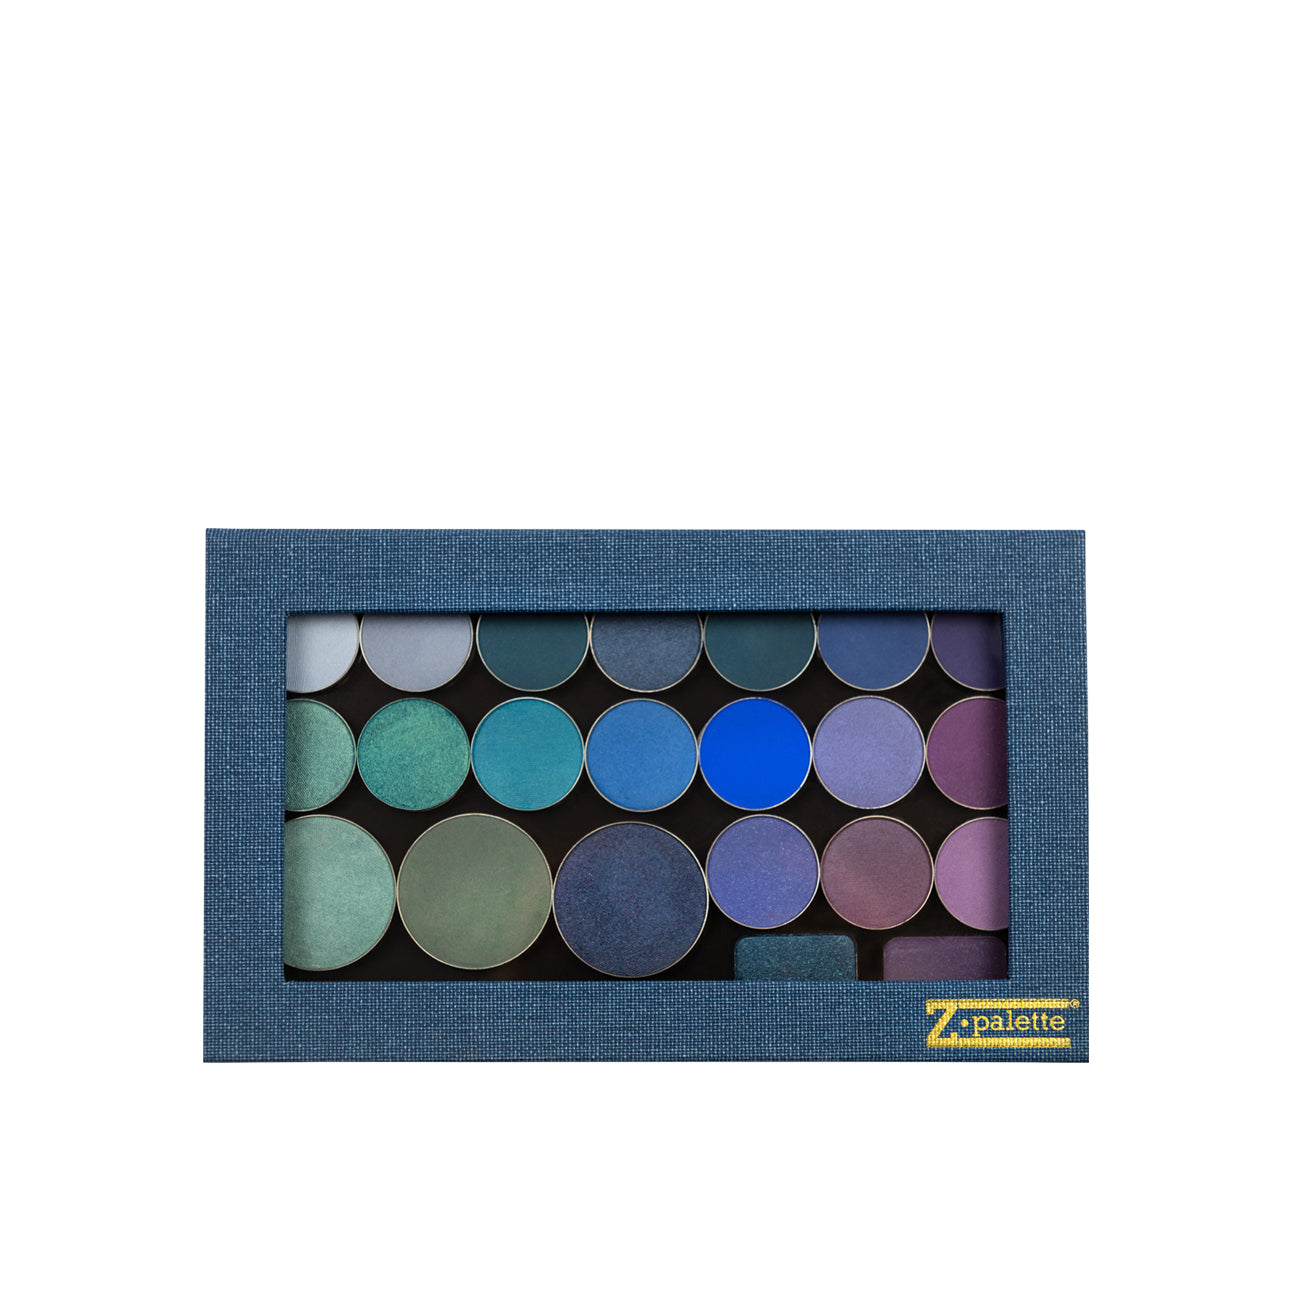 LARGE BLUE JEAN Z PALETTE